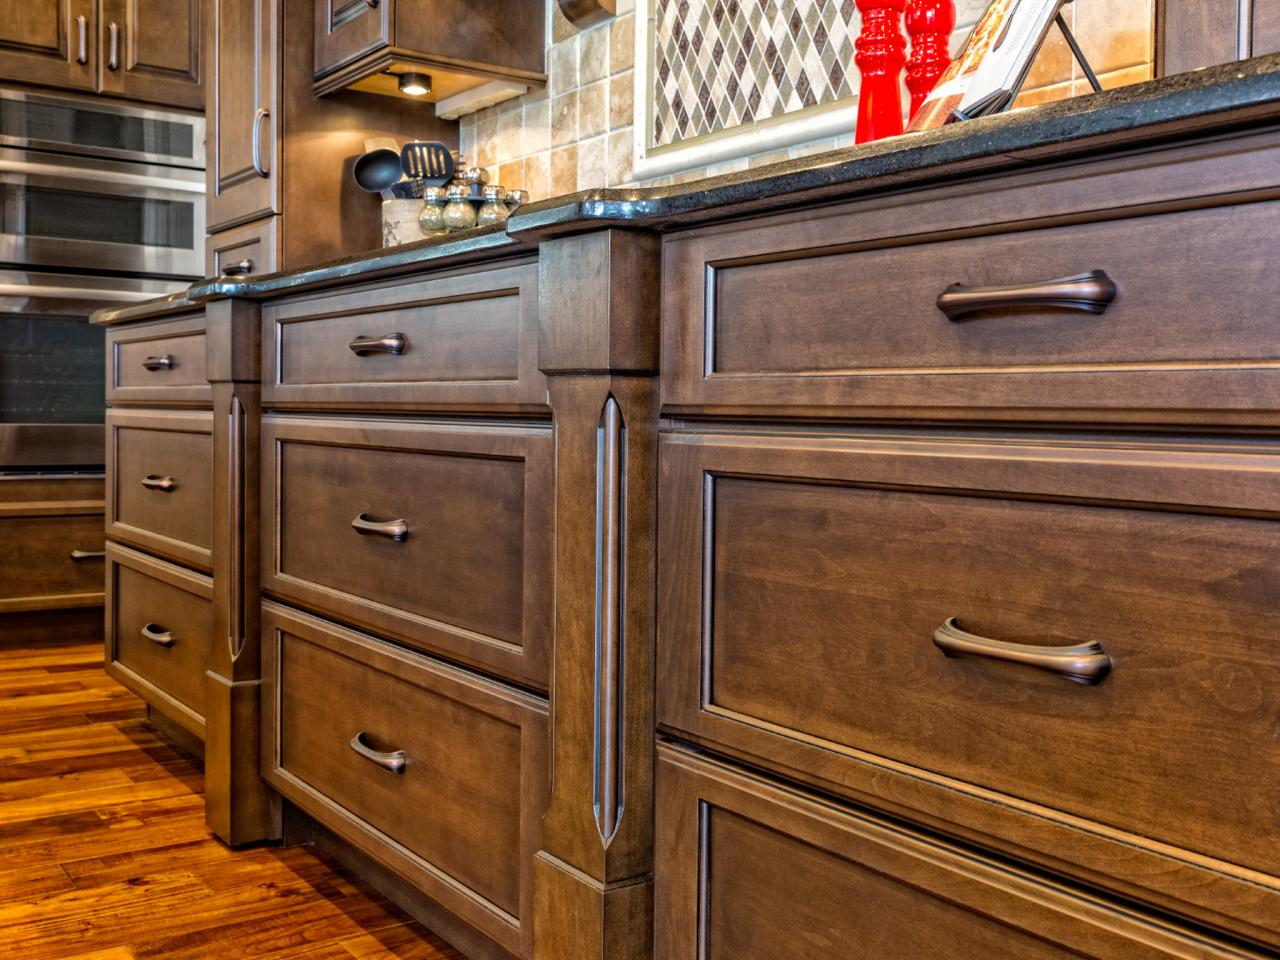 How to clean wood cabinets diy - How to remove grease stains from kitchen cabinets ...